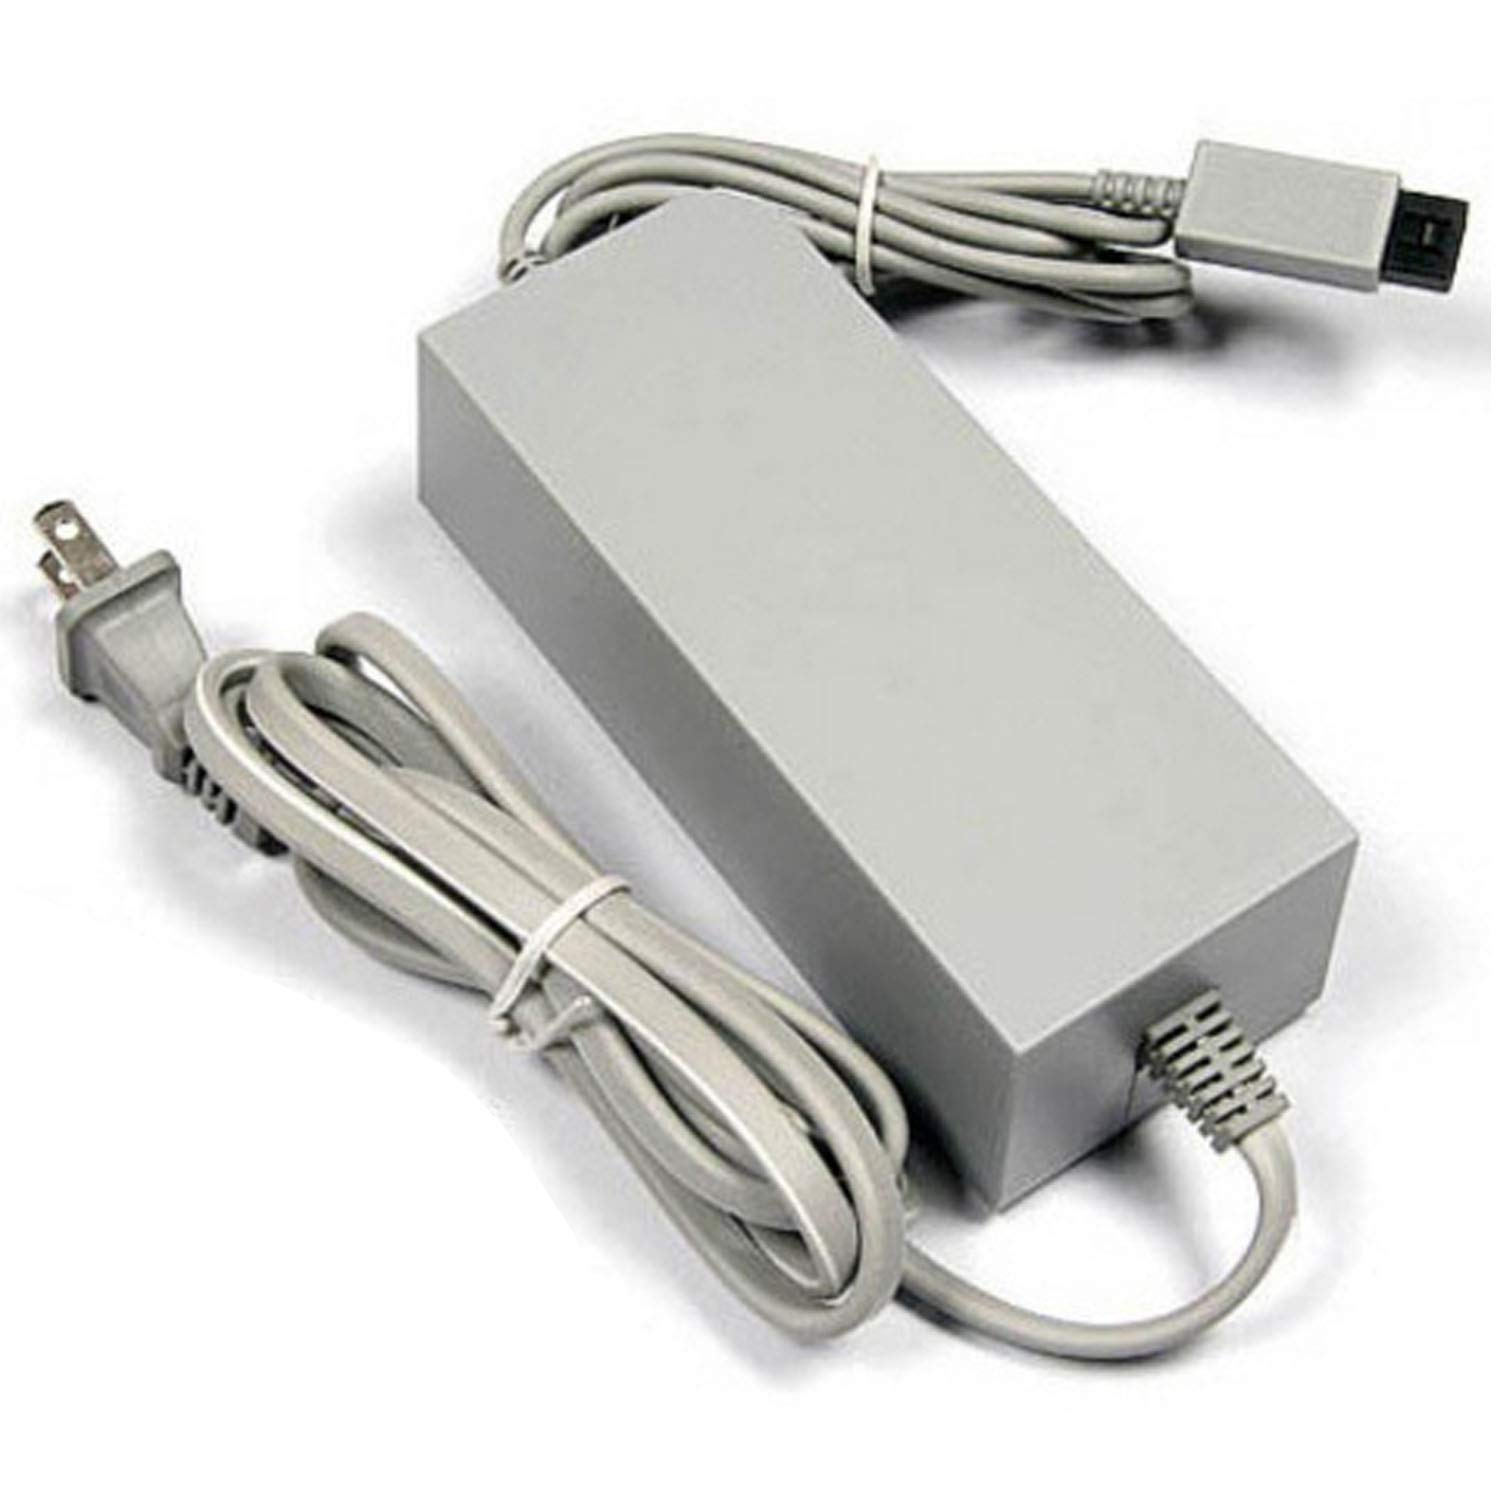 Wii Replacement Power Adapter, 110-240V Universal Plug and Play